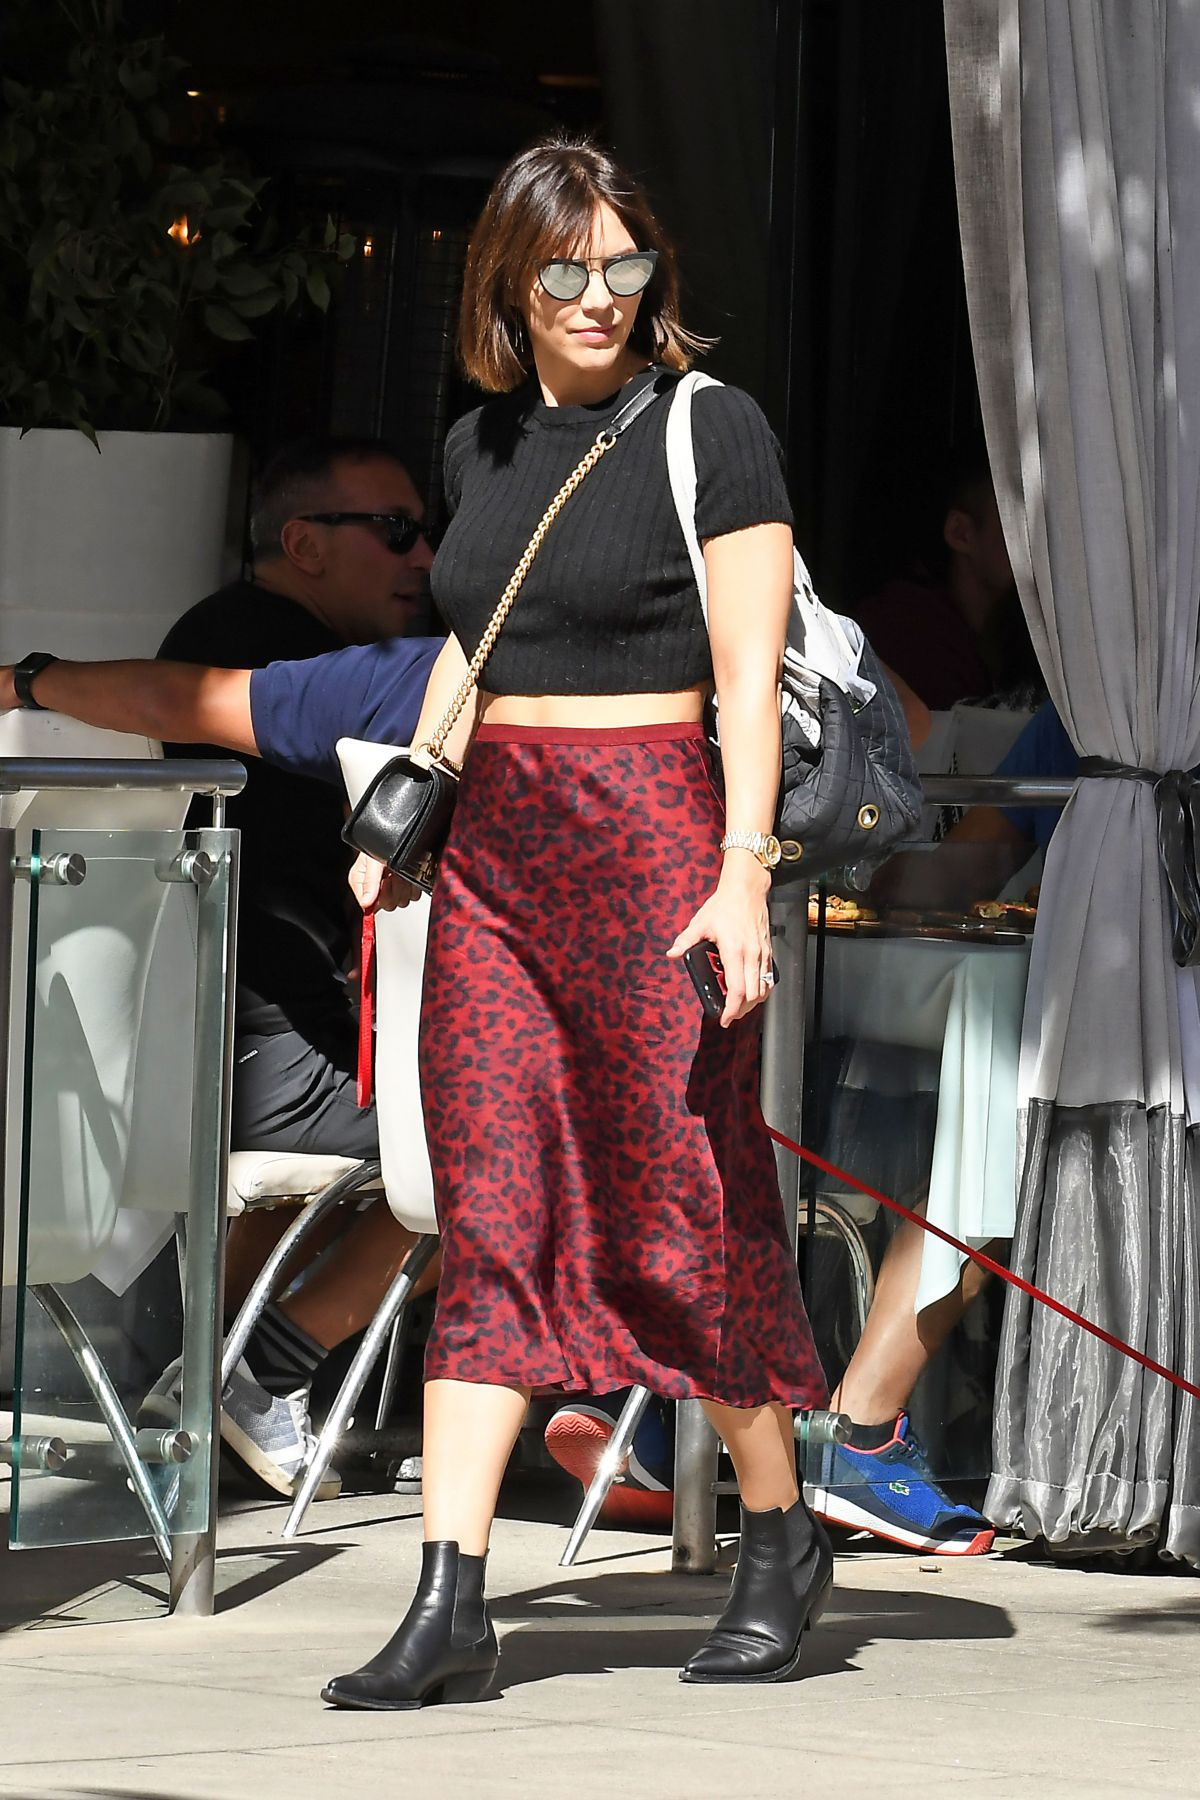 katharine-mcphee-out-with-her-dog-in-los-angeles-07-31